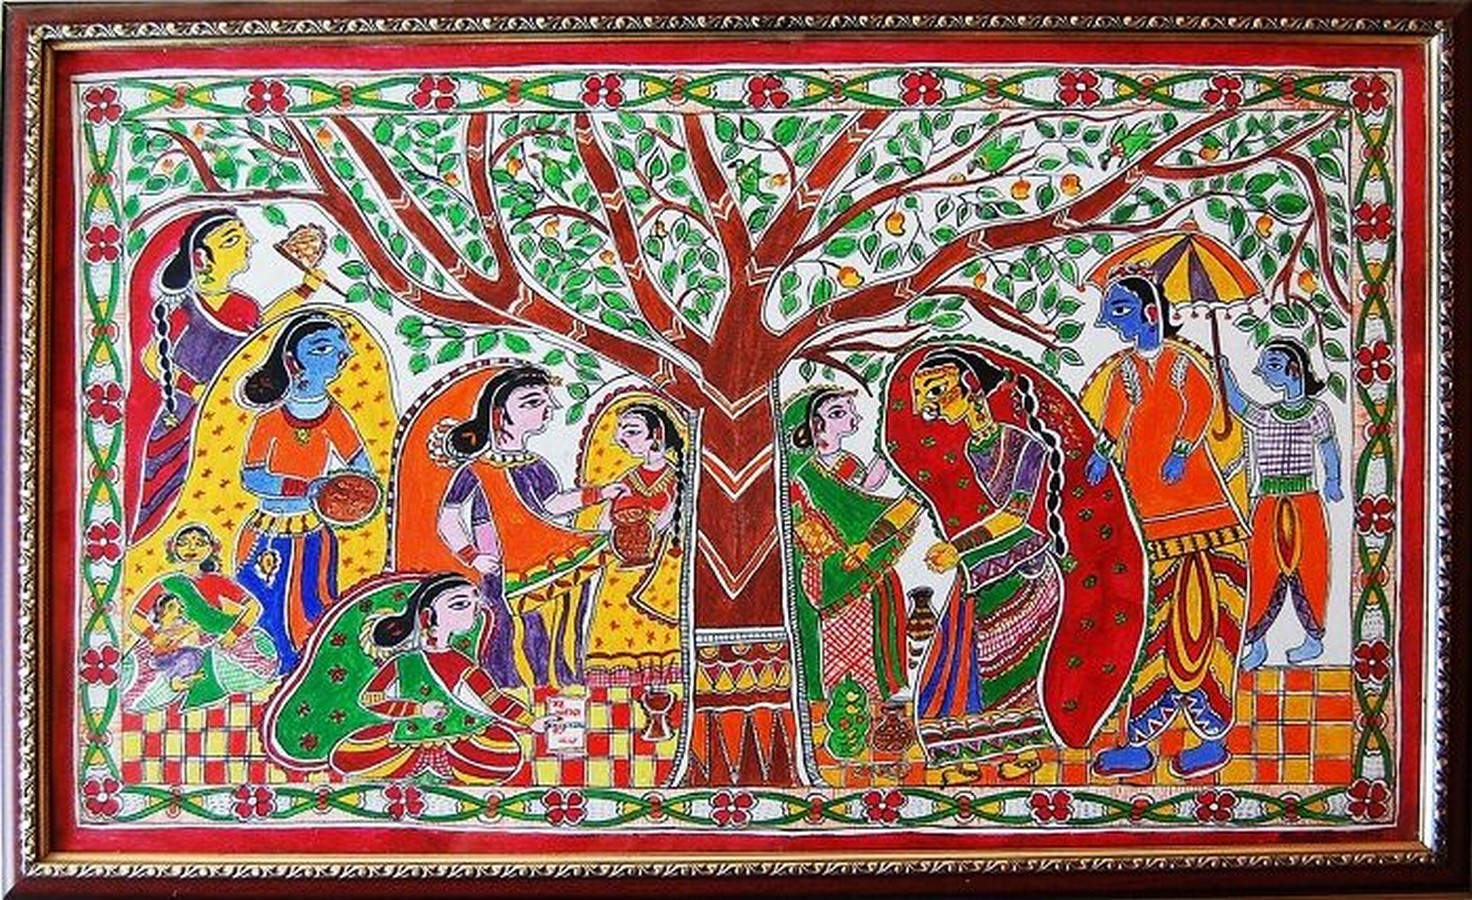 Crafts of India- Painting - Sheet2